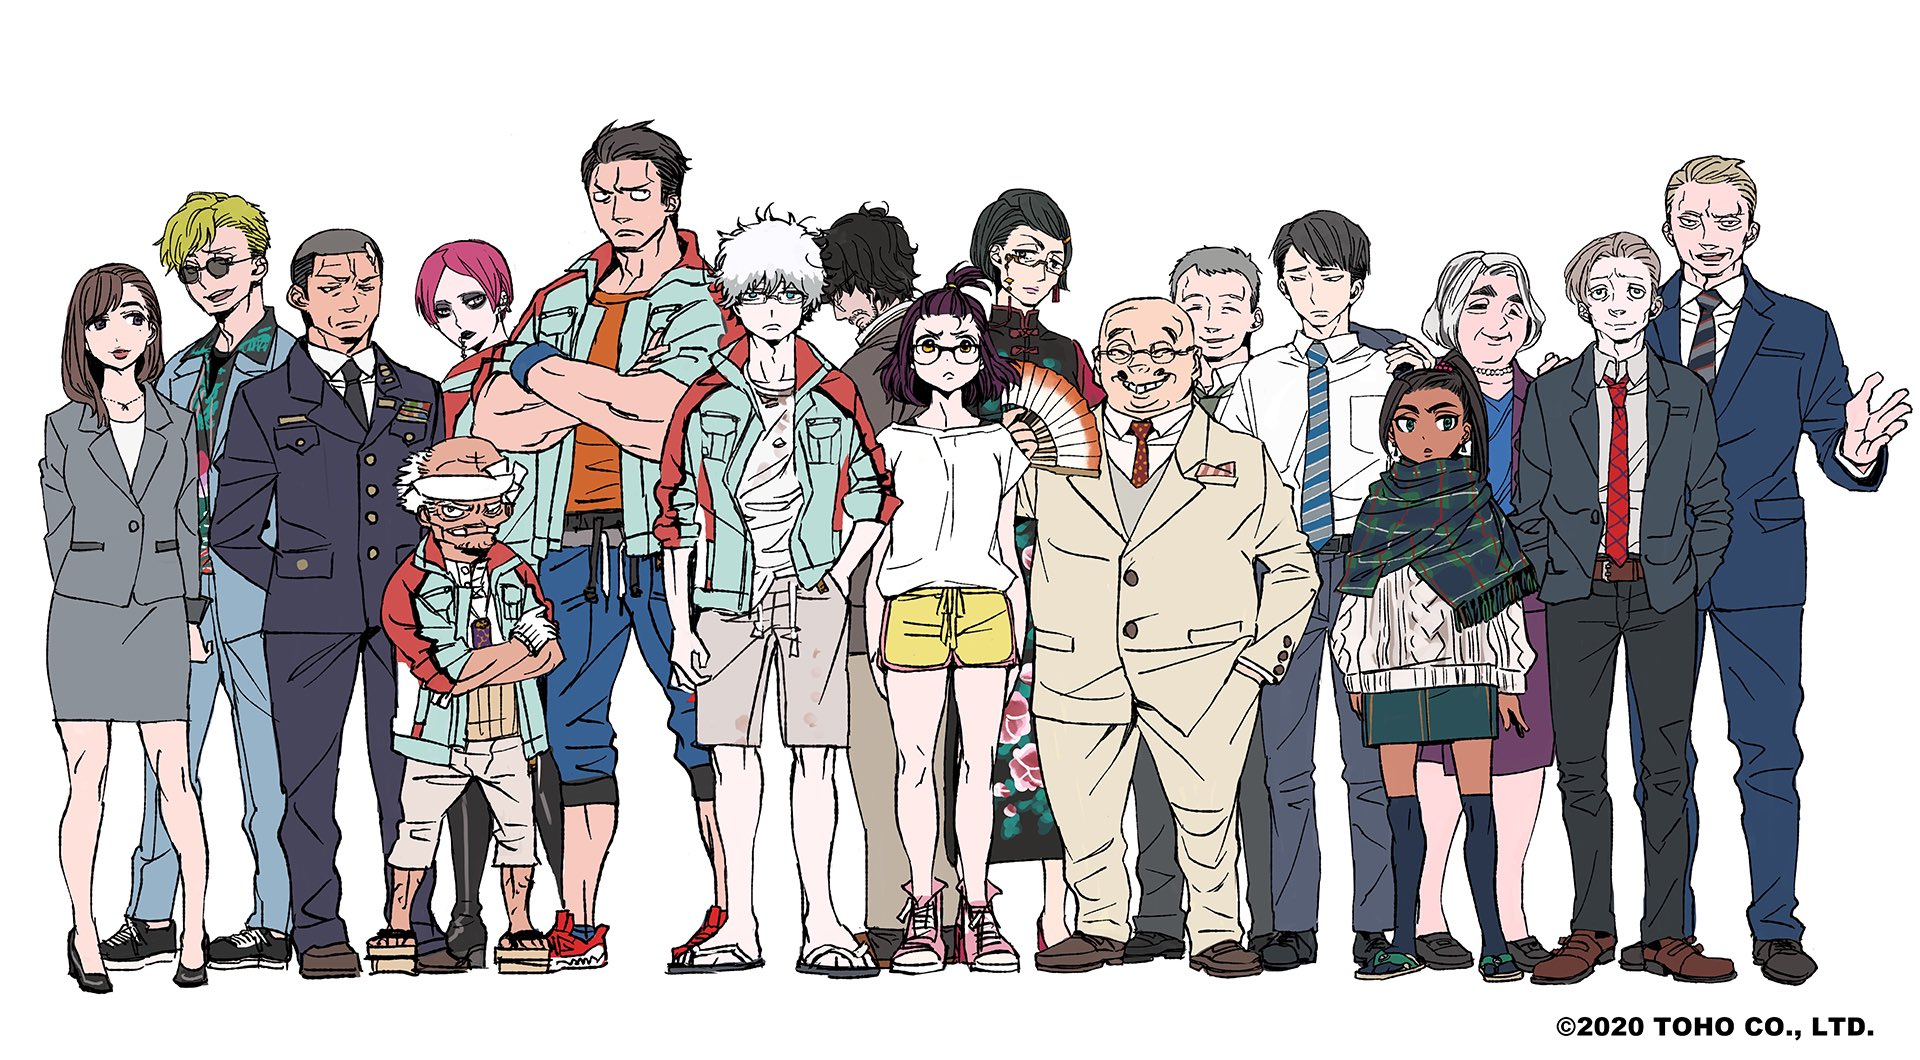 Bones, Orange Produce 'Godzilla: Singular Point' TV Anime for Spring 2021